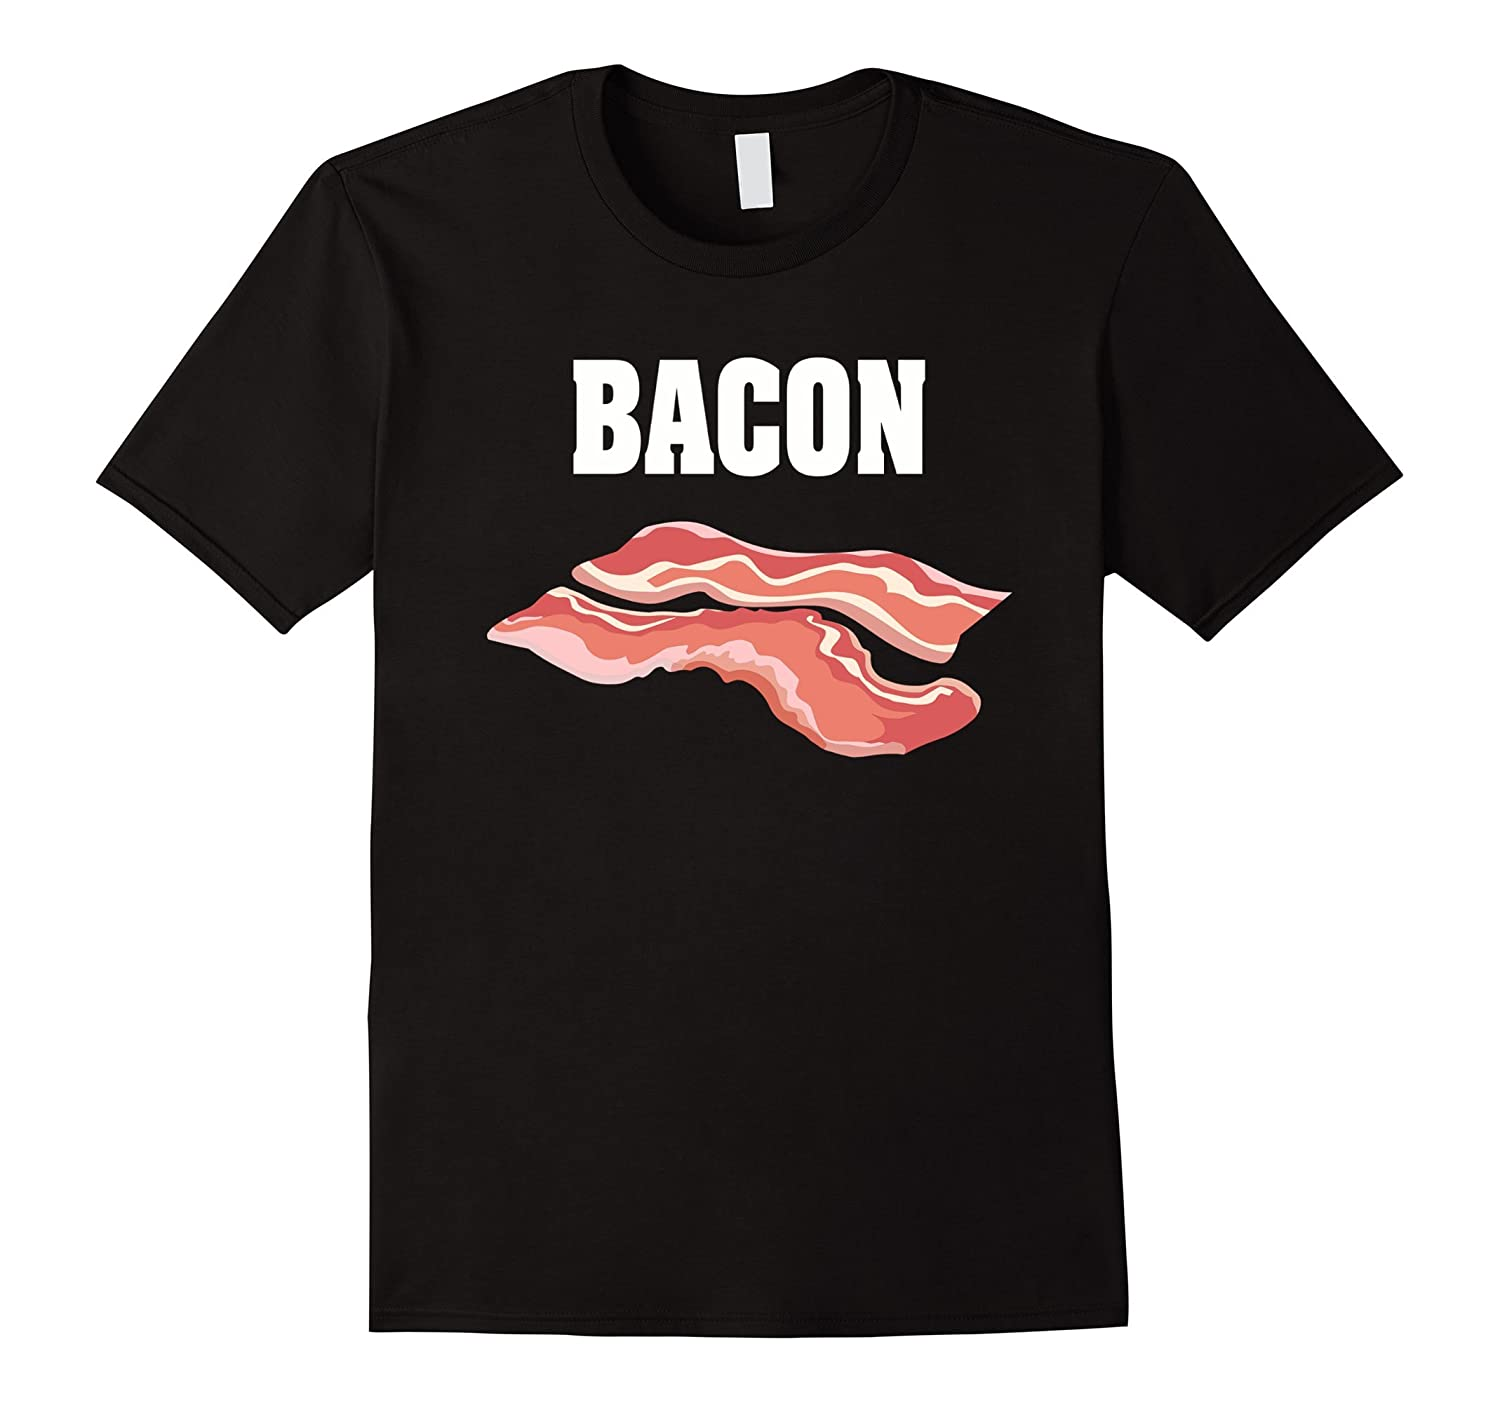 Bacon Couples Halloween Costume T-shirt Bacon & Eggs